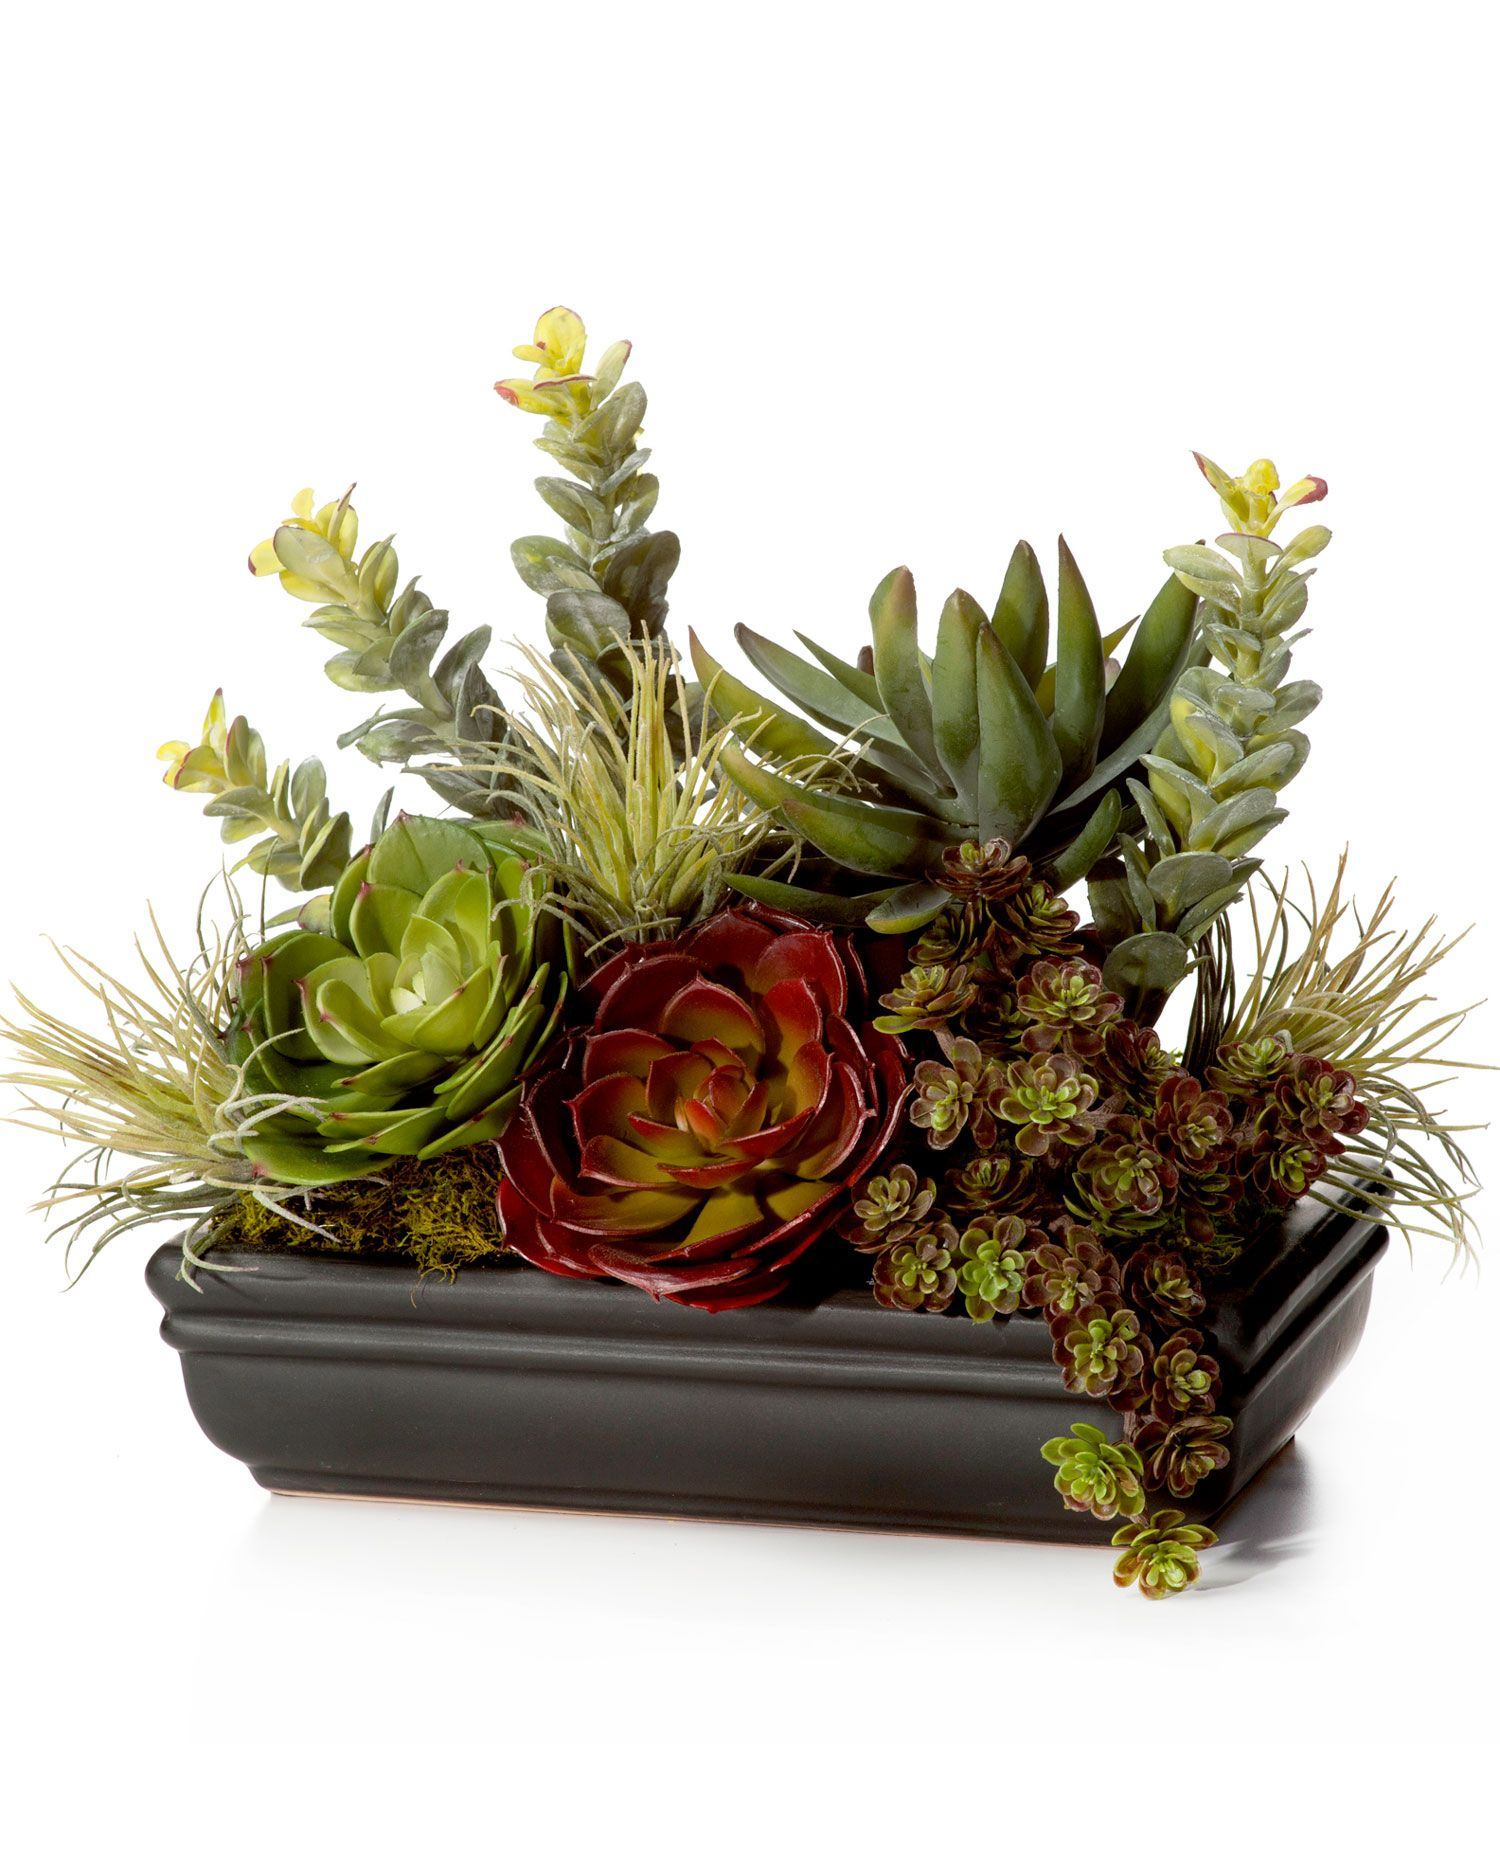 faux succulent planter pinterest suculentas arreglos florales y arreglos. Black Bedroom Furniture Sets. Home Design Ideas